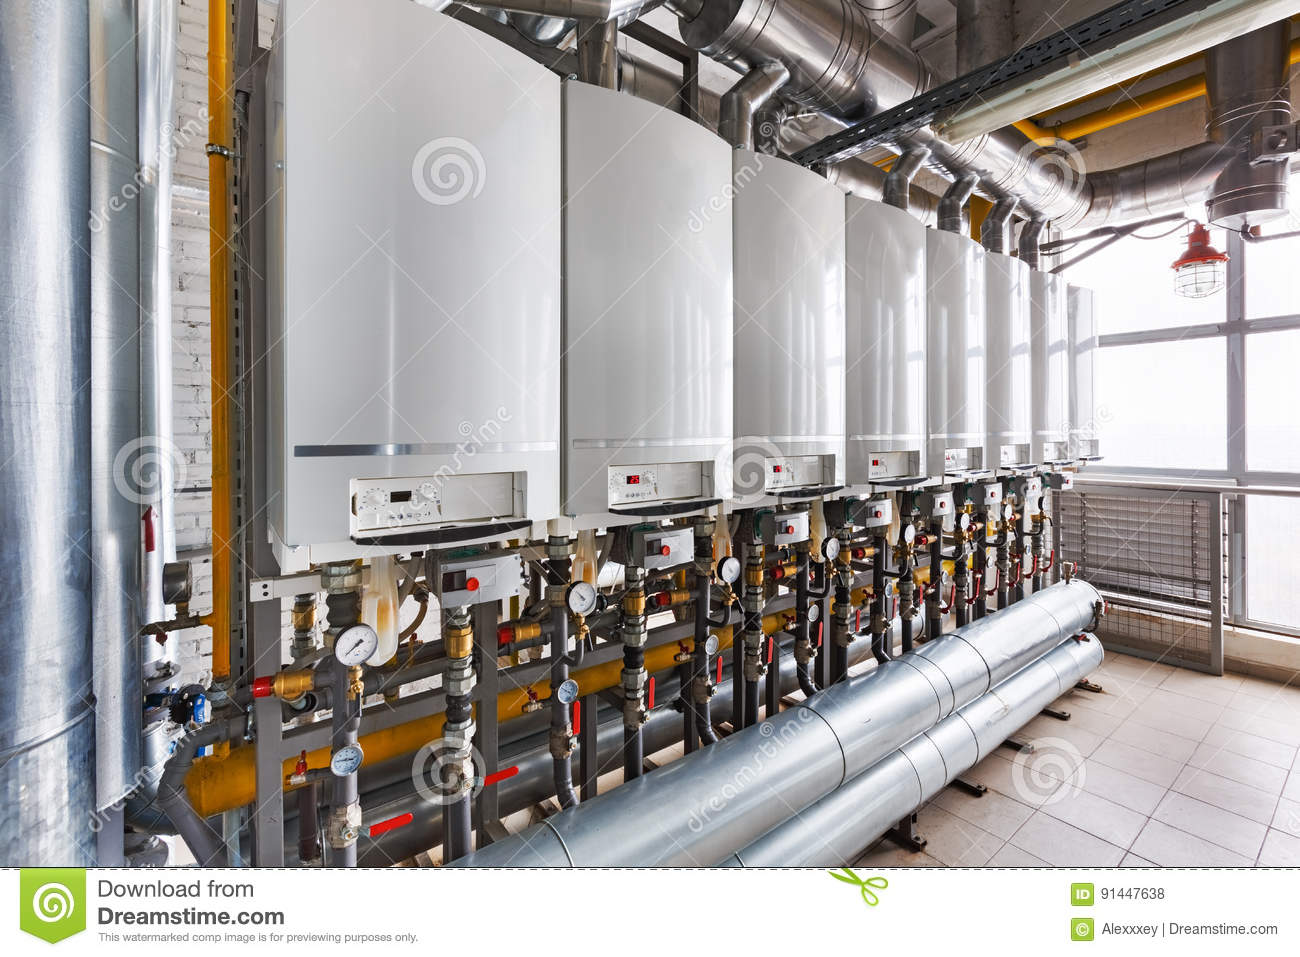 Interior of industrial, gas boiler house with a lot of boilers a